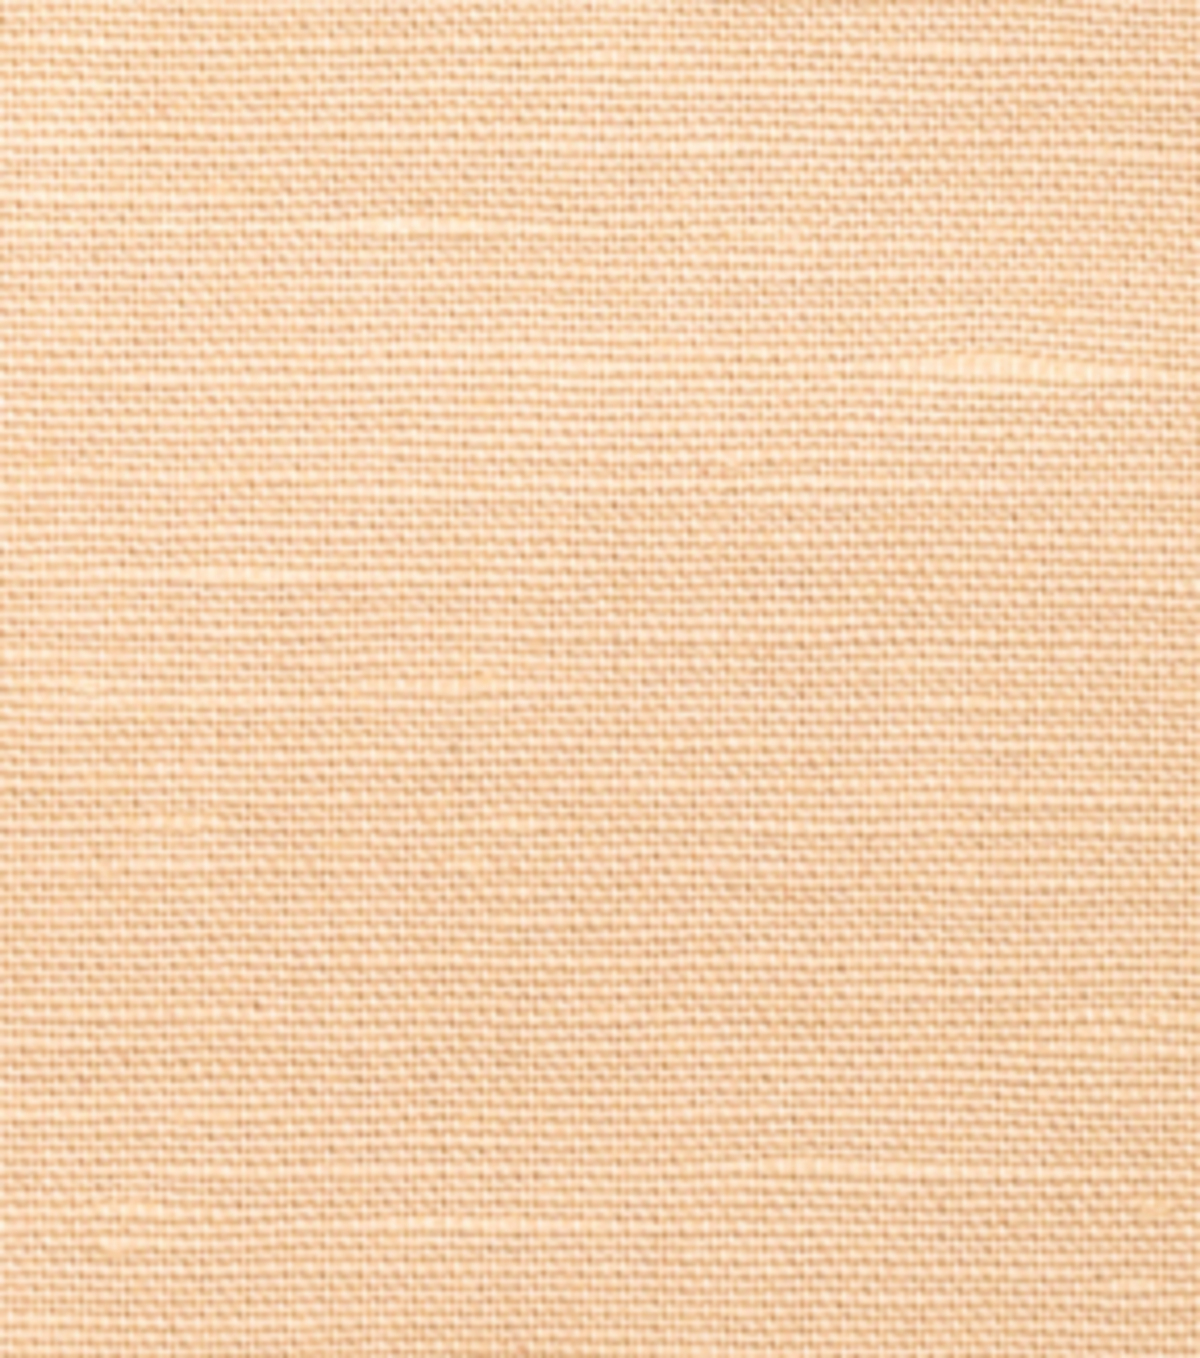 "Home Decor 8""x8"" Fabric Swatch-Signature Series Sonoma Linen-Cotton Flax"